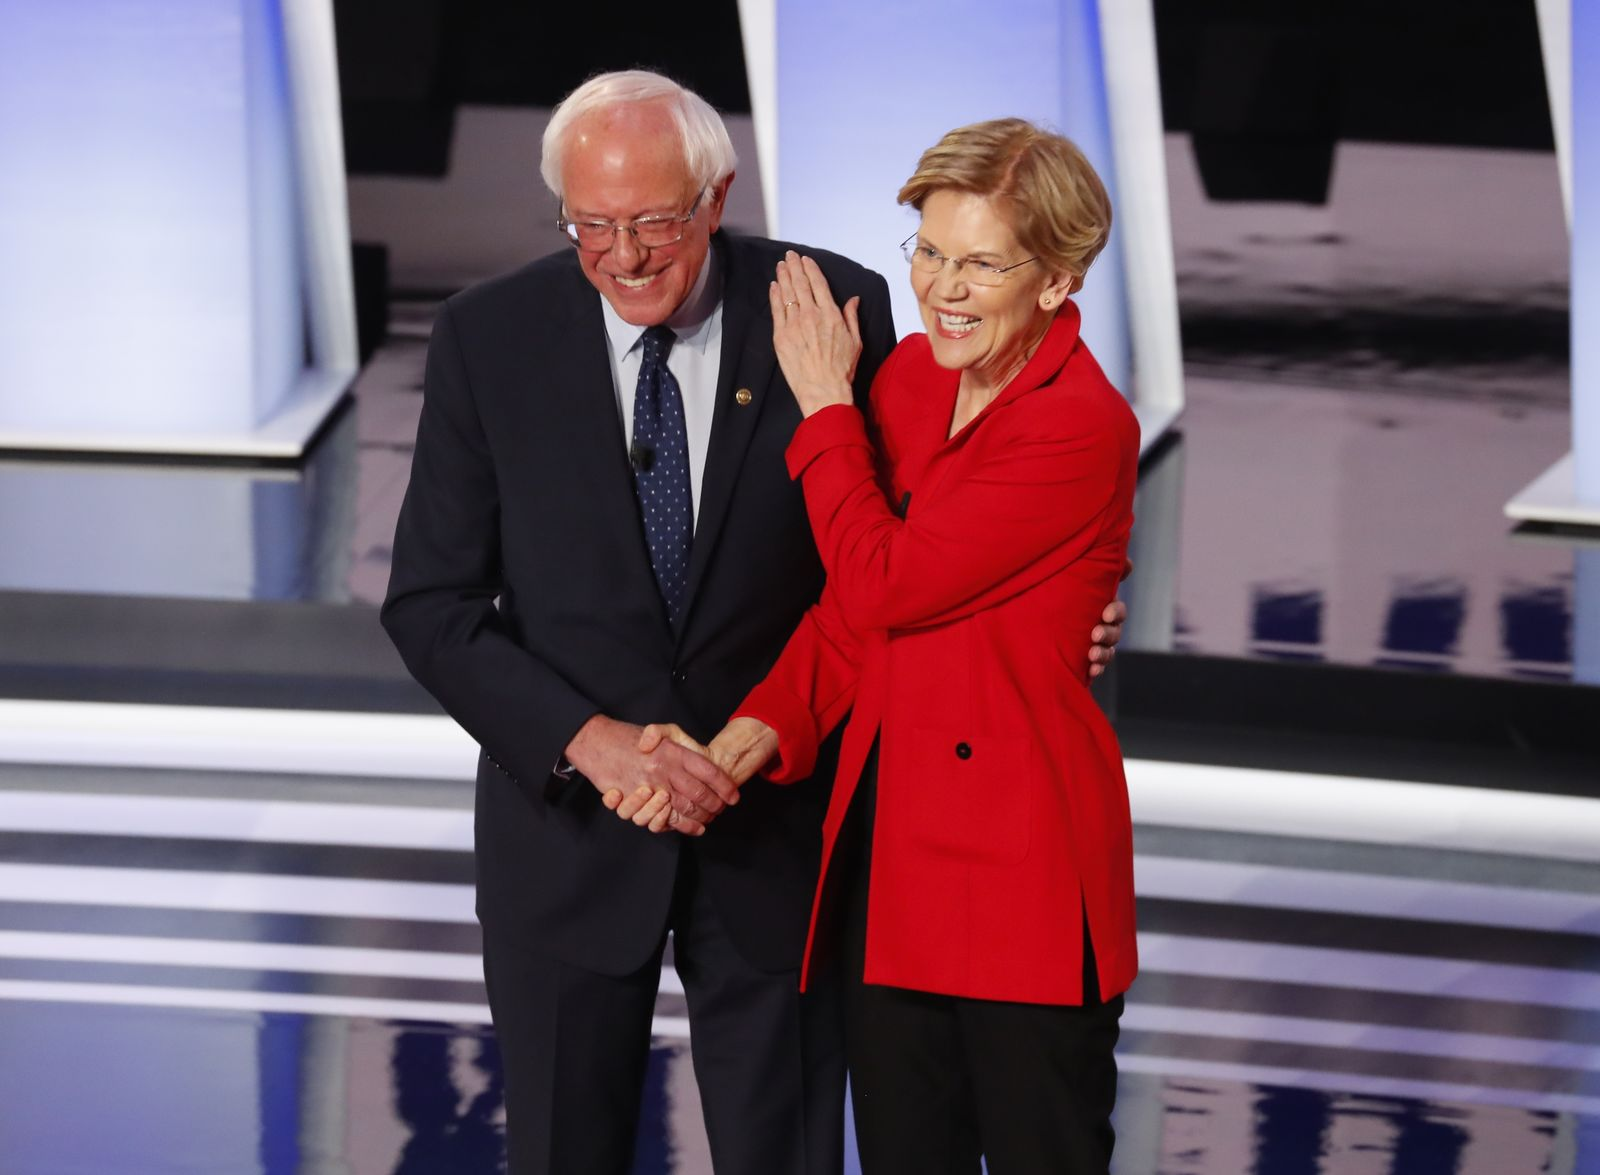 Sen. Bernie Sanders, I-Vt., and Sen. Elizabeth Warren, D-Mass., greet each other before the first of two Democratic presidential primary debates hosted by CNN Tuesday, July 30, 2019, in the Fox Theatre in Detroit. (AP Photo/Paul Sancya)